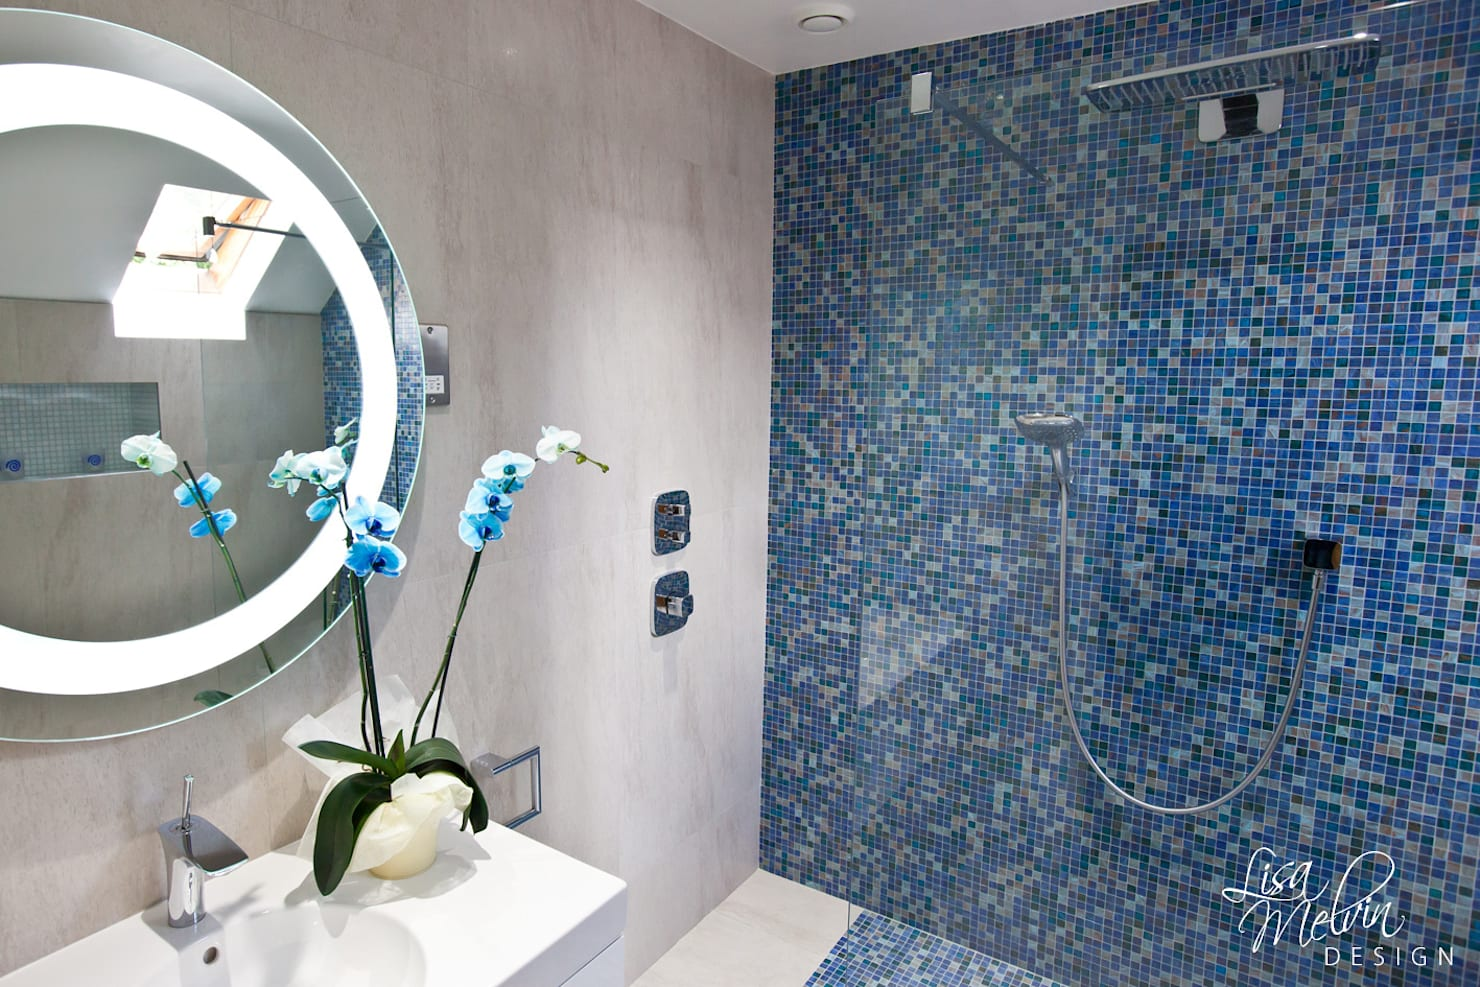 The newest ceramic trends for this year